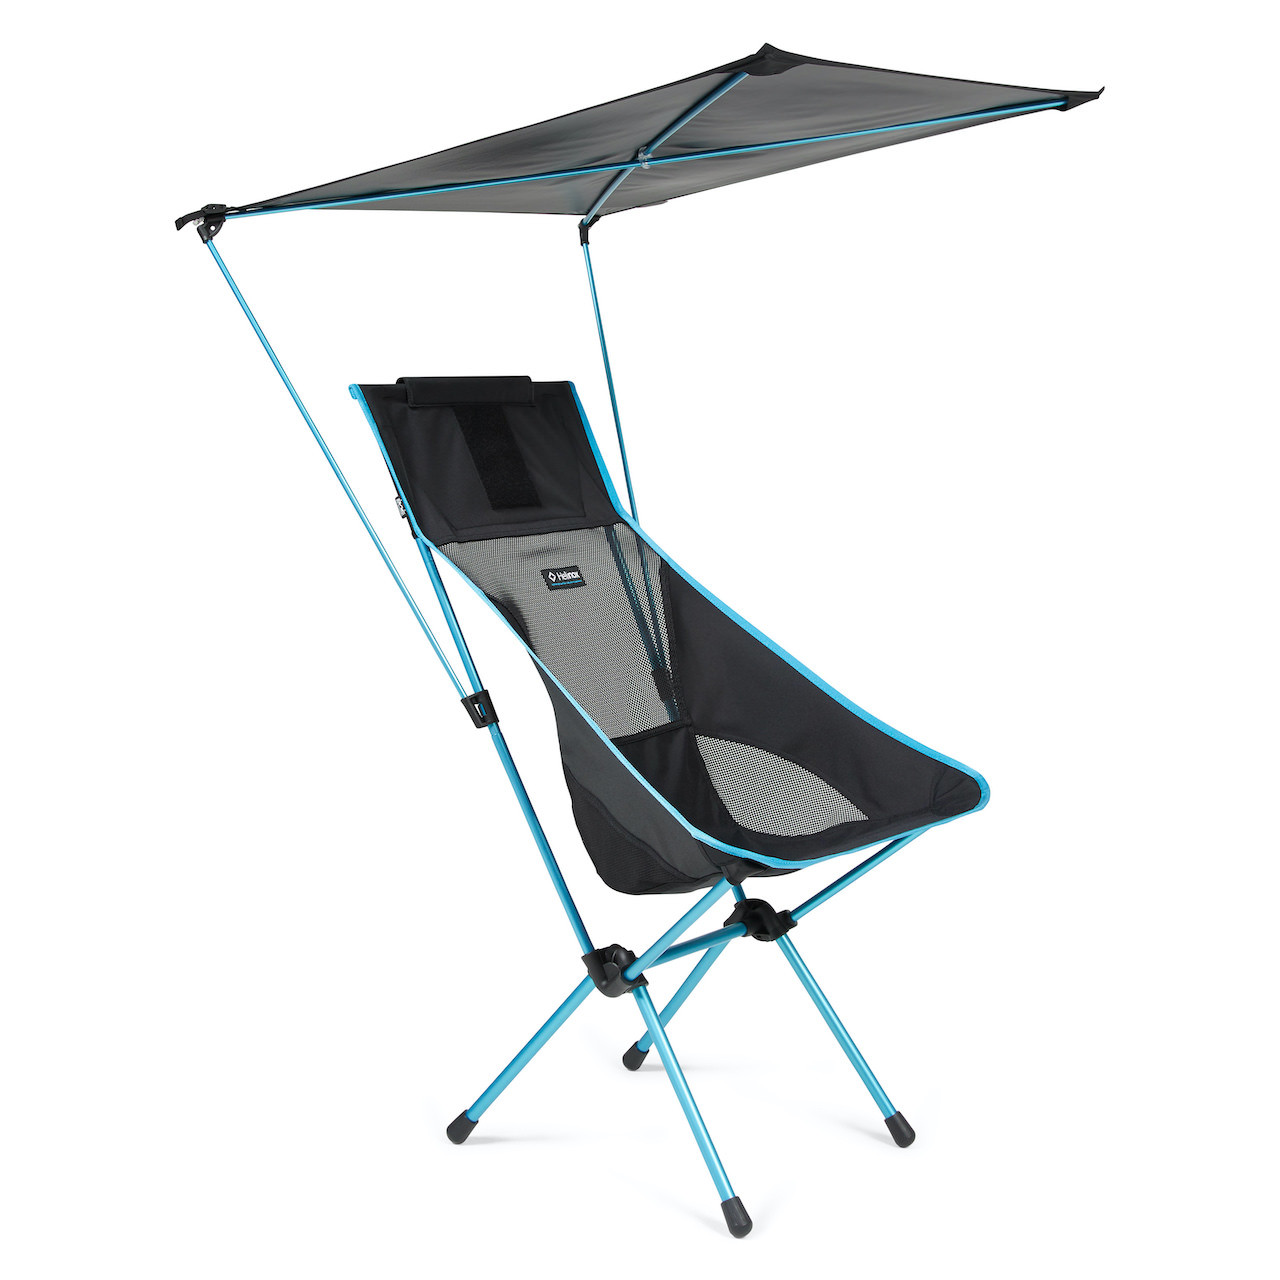 Helinox_191001R1_Personal-Shade_Black_Angle-Front